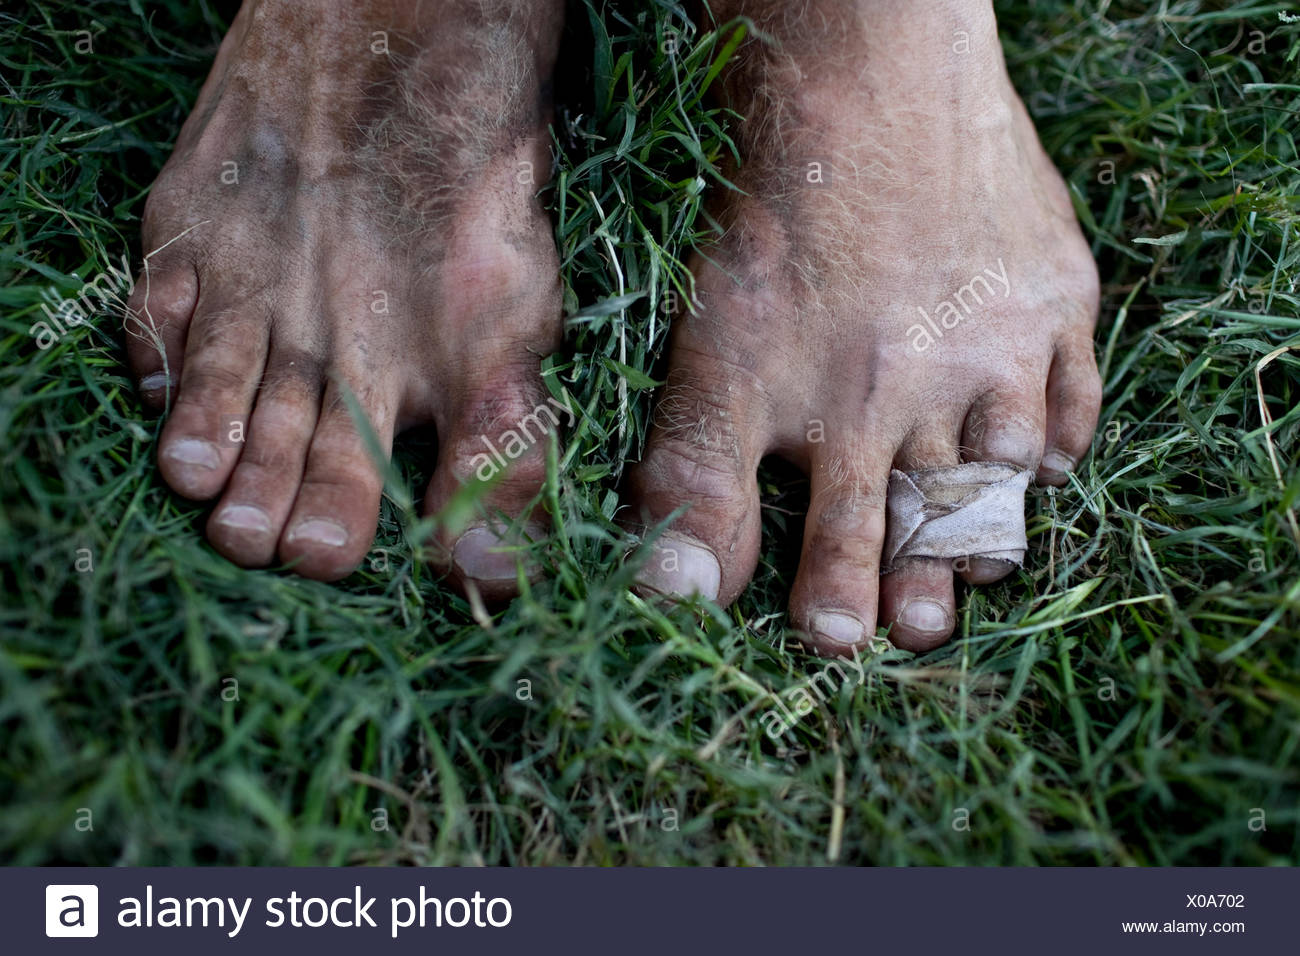 Dirty Feet And Toes Imágenes De Stock & Dirty Feet And Toes Fotos De ...